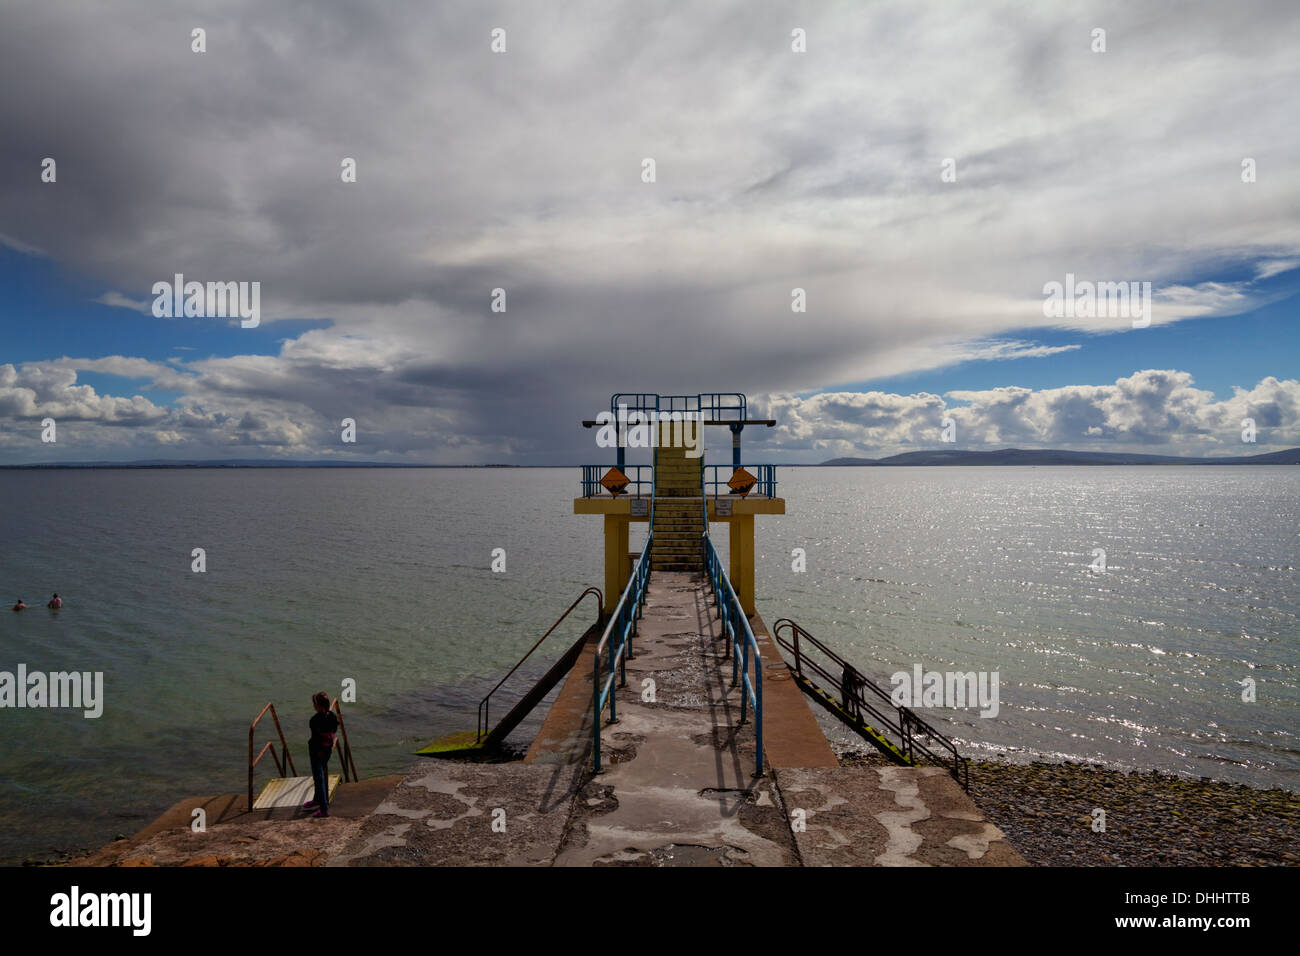 Overlooking Galway Bay, The Blackrock Diving and Viewing Tower at Salthill, Near Galway City, Ireland - Stock Image